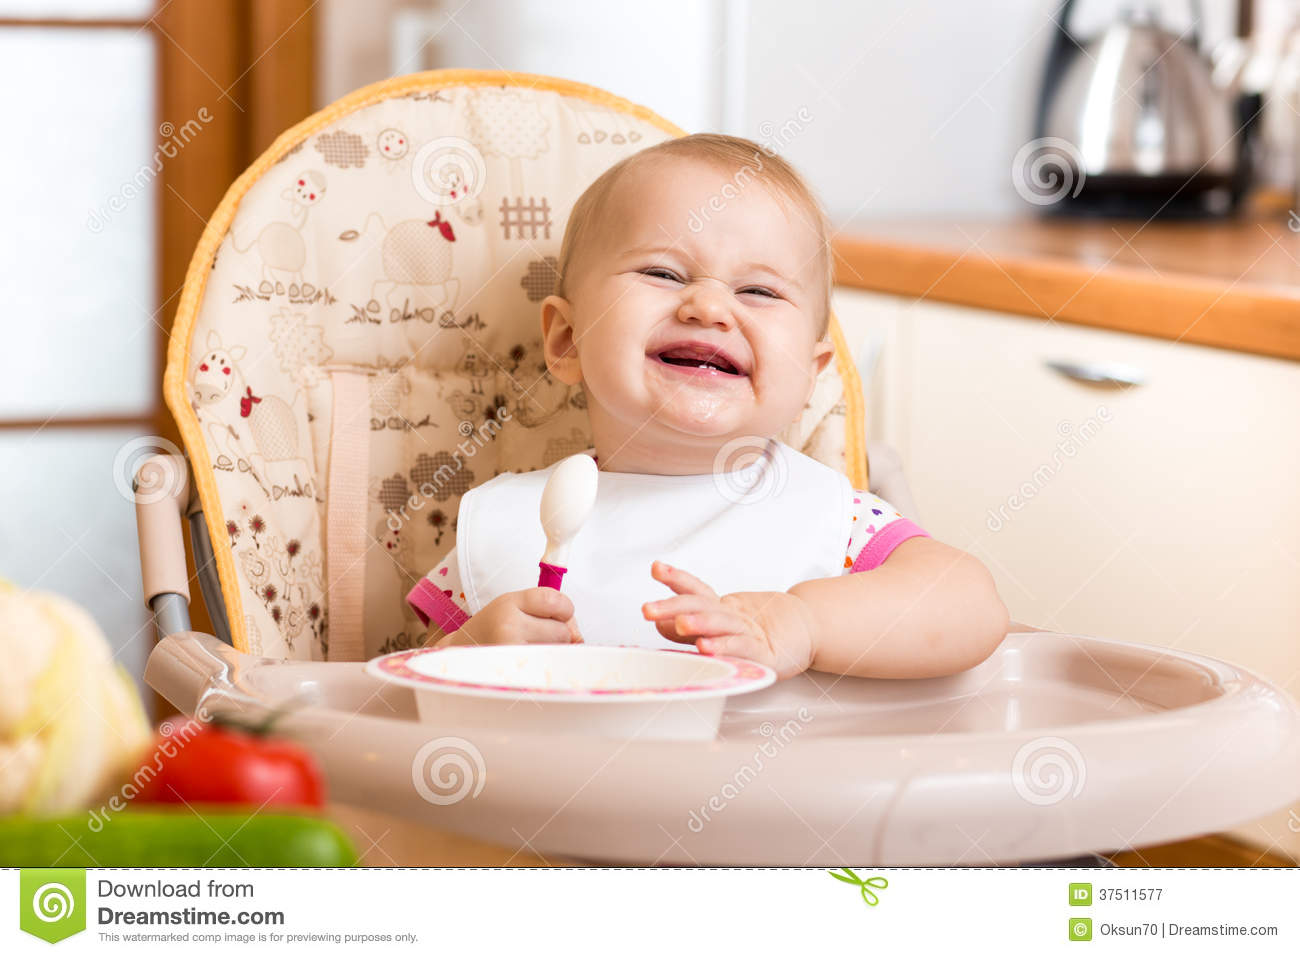 Baby Food Chair Funny Baby Eating In High Chair On Kitchen Stock Image